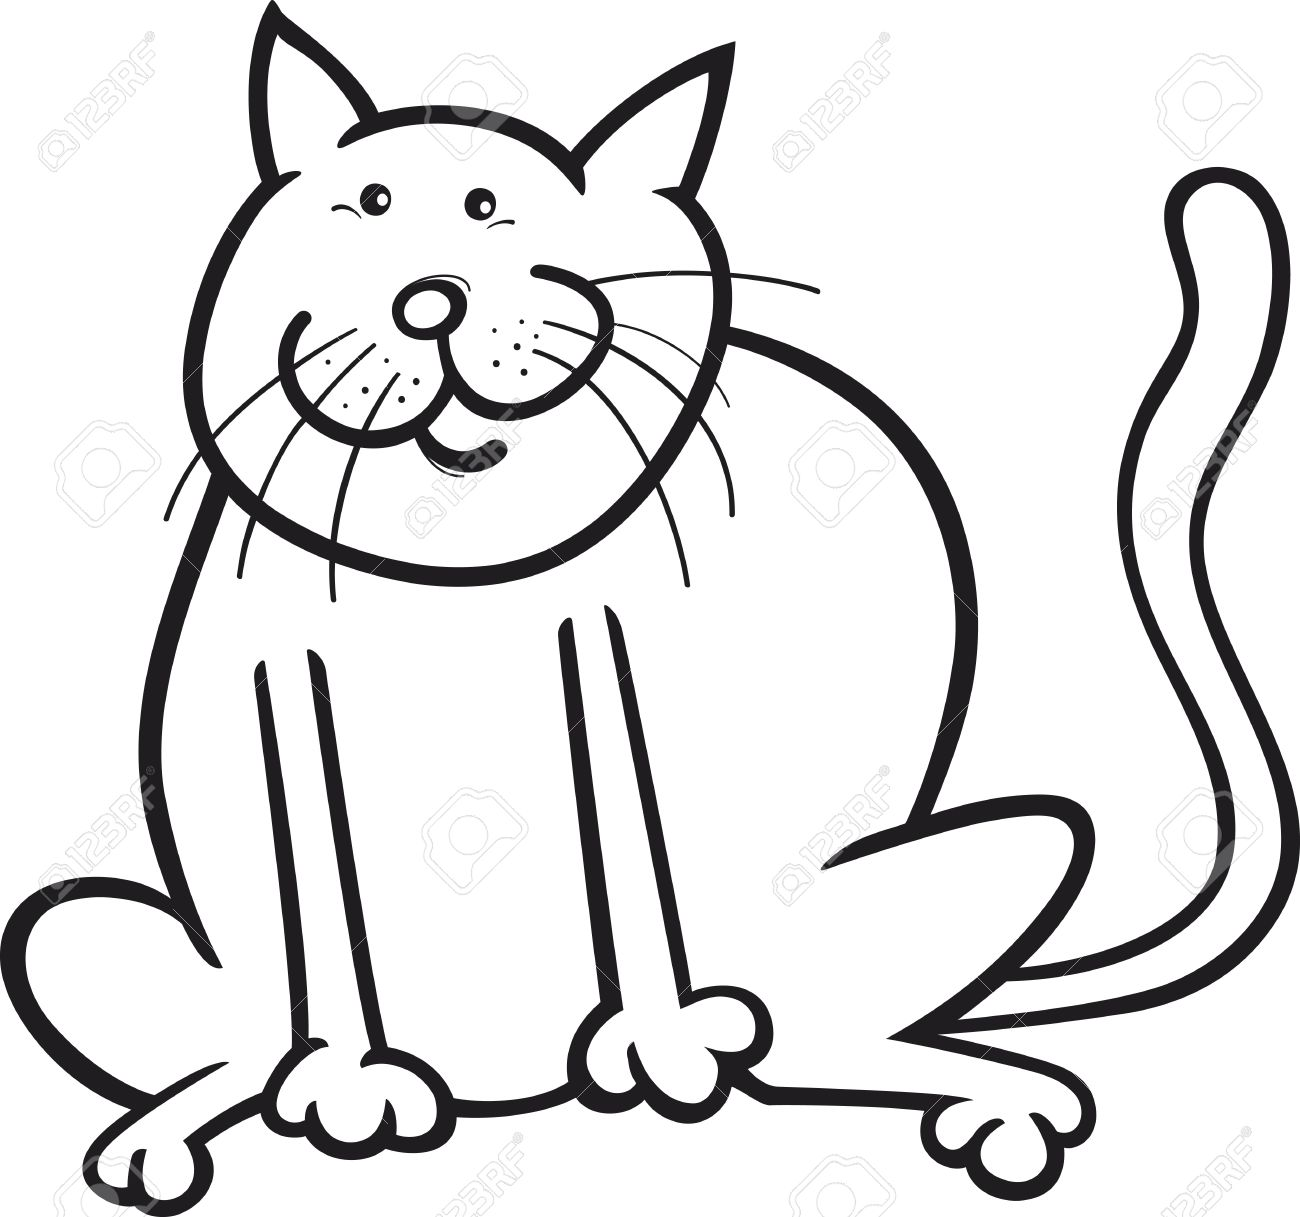 1300x1217 Fat Cat Clipart Black And White